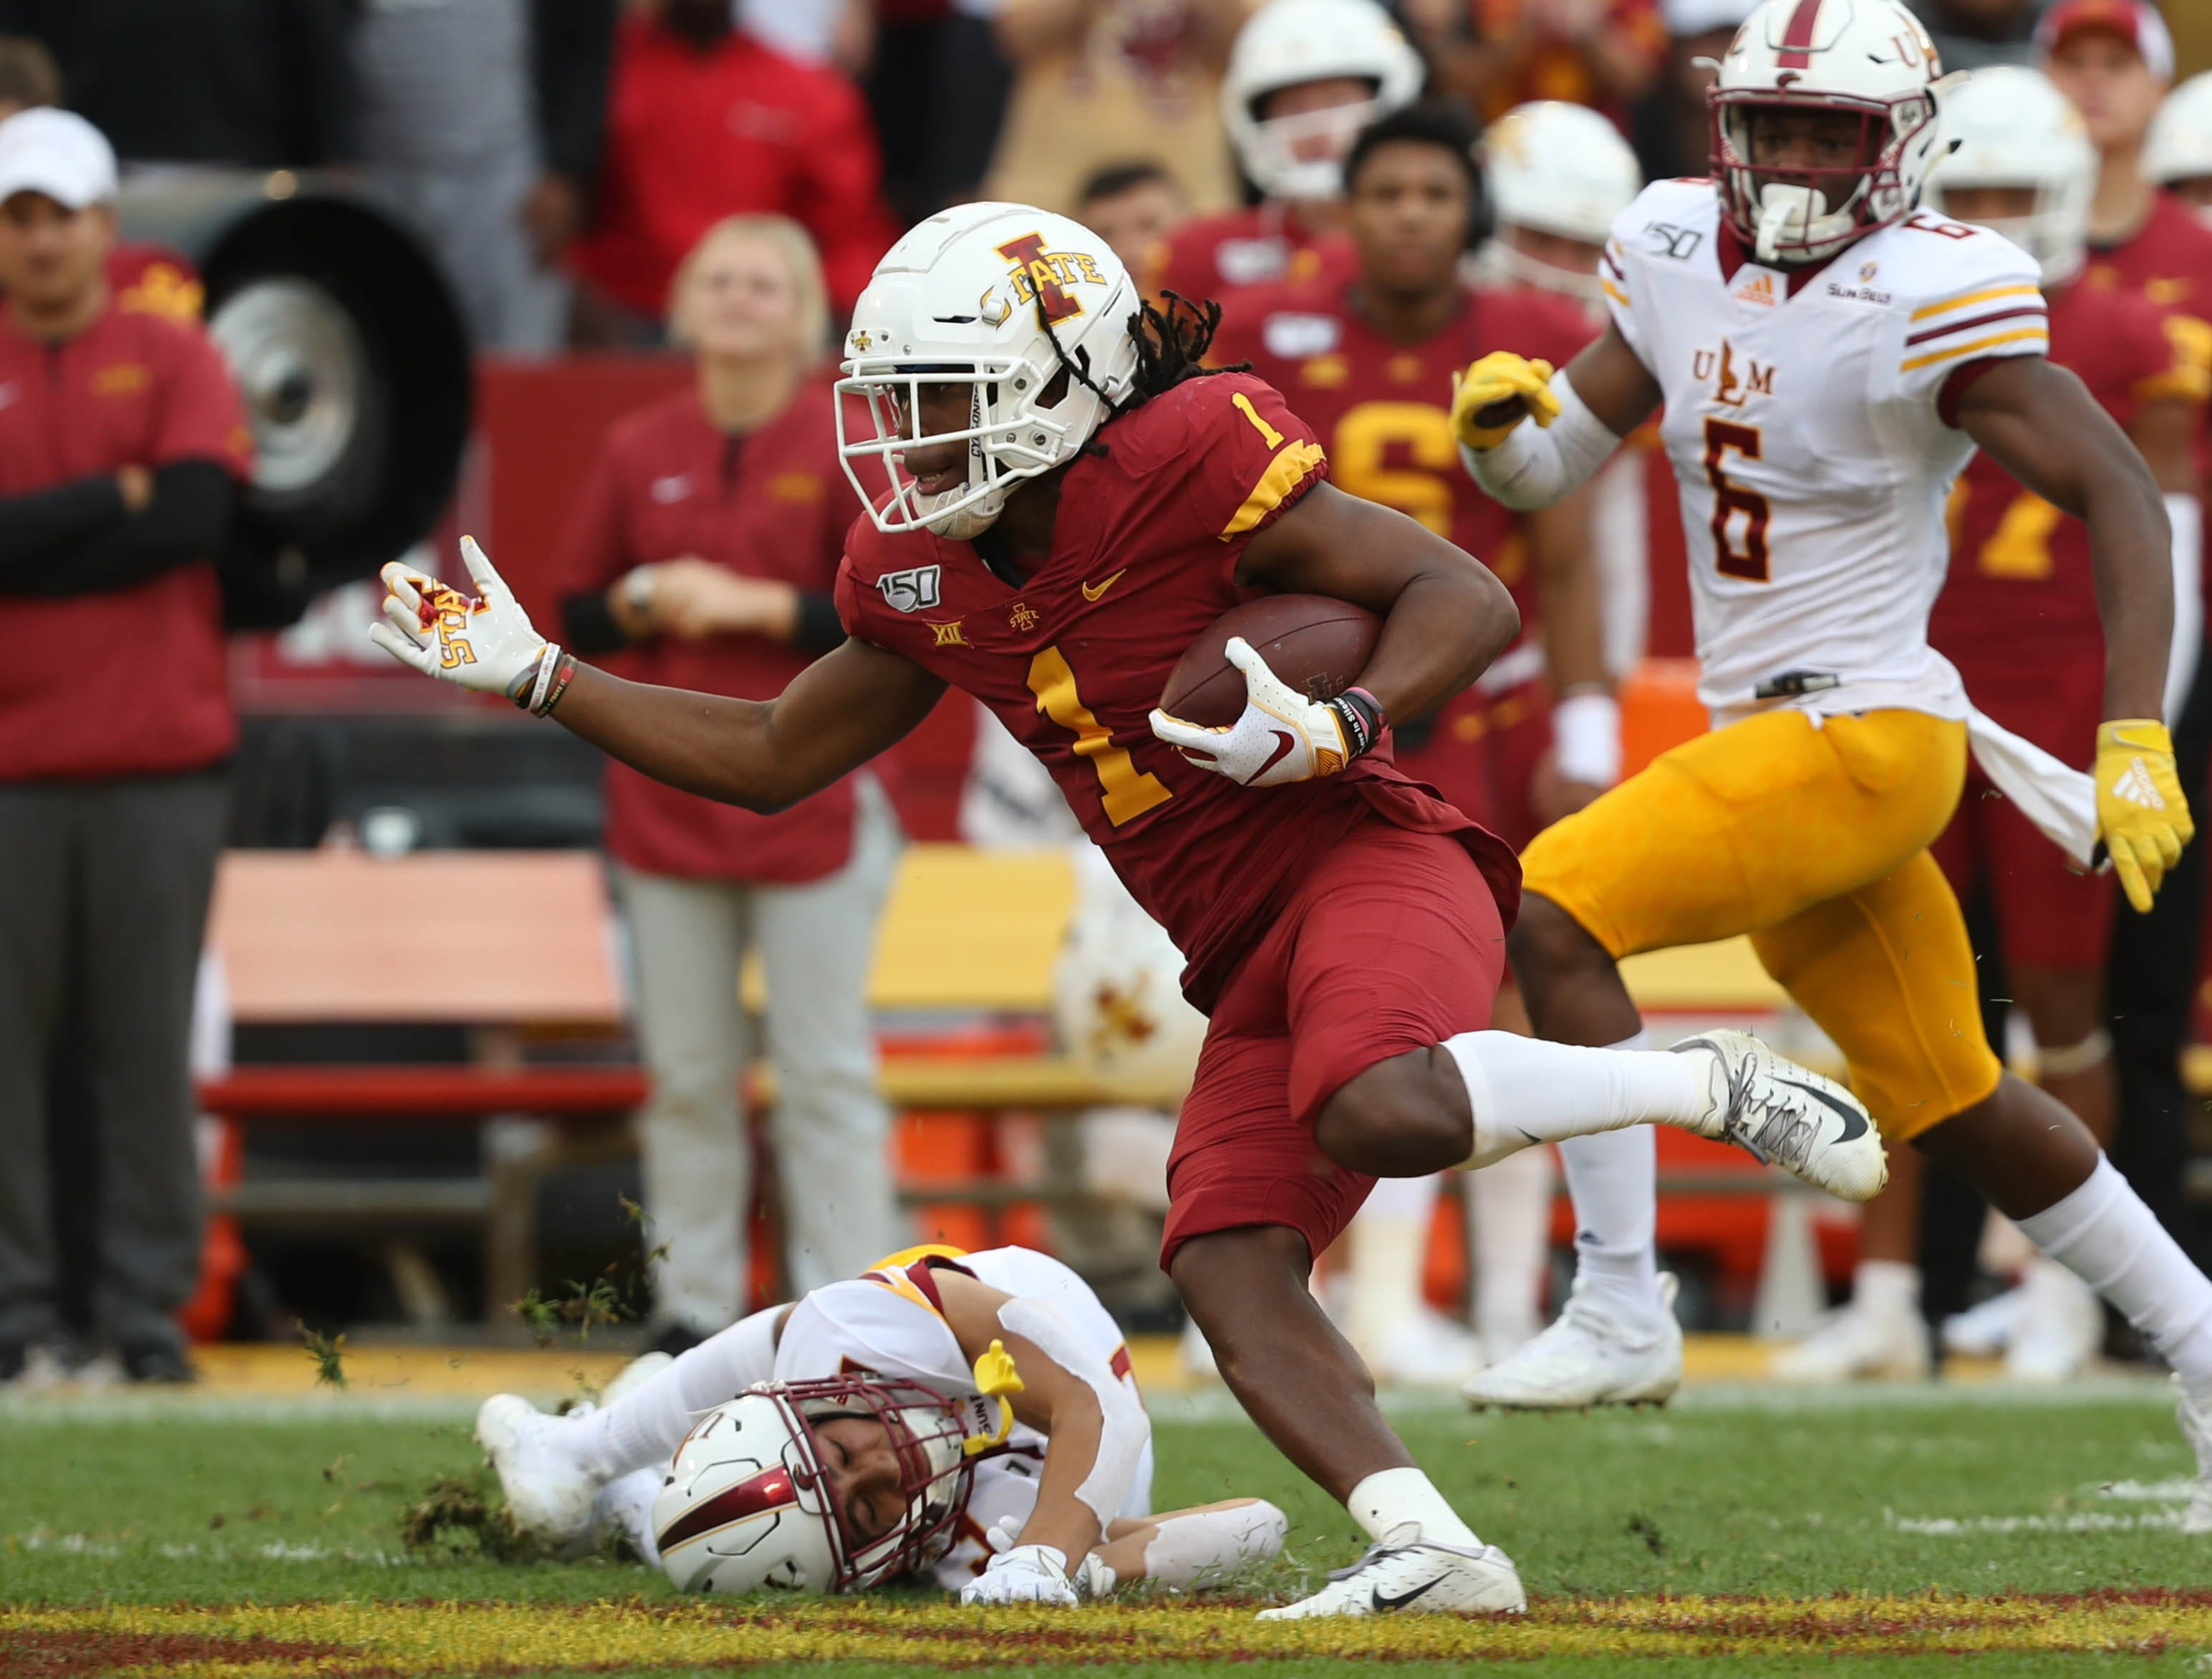 Iowa State football photos: Cyclones blow out Louisiana-Monroe, 72-20